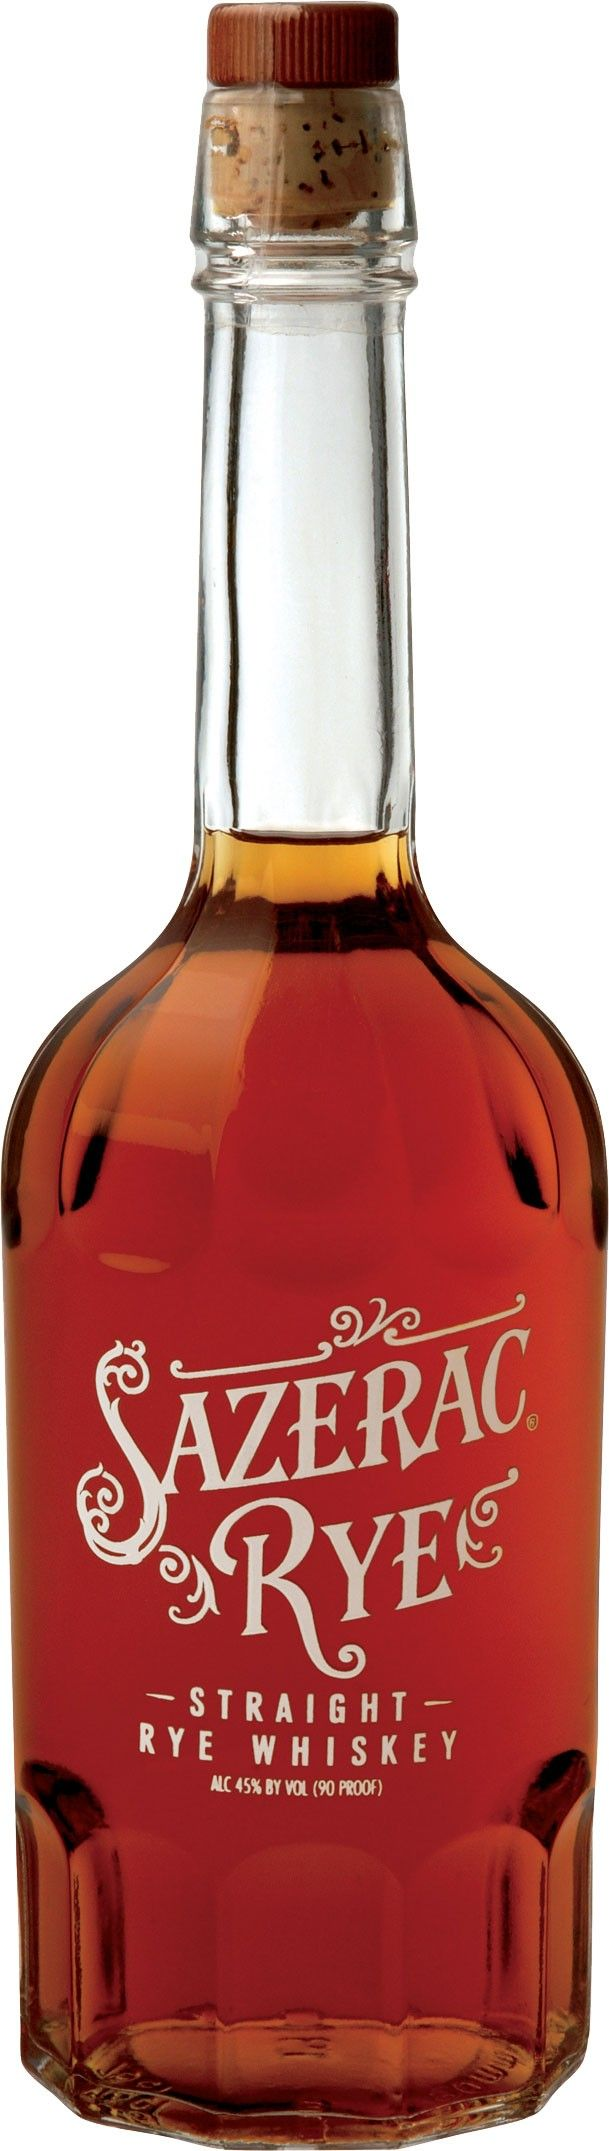 """Sazerac 6 Year Old Straight Rye #Whiskey.  Aged for a minimum of six years, this whiskey earned a score of 95 points from Wine Enthusiast, which called it a """"Best Buy.""""   @Caskers"""